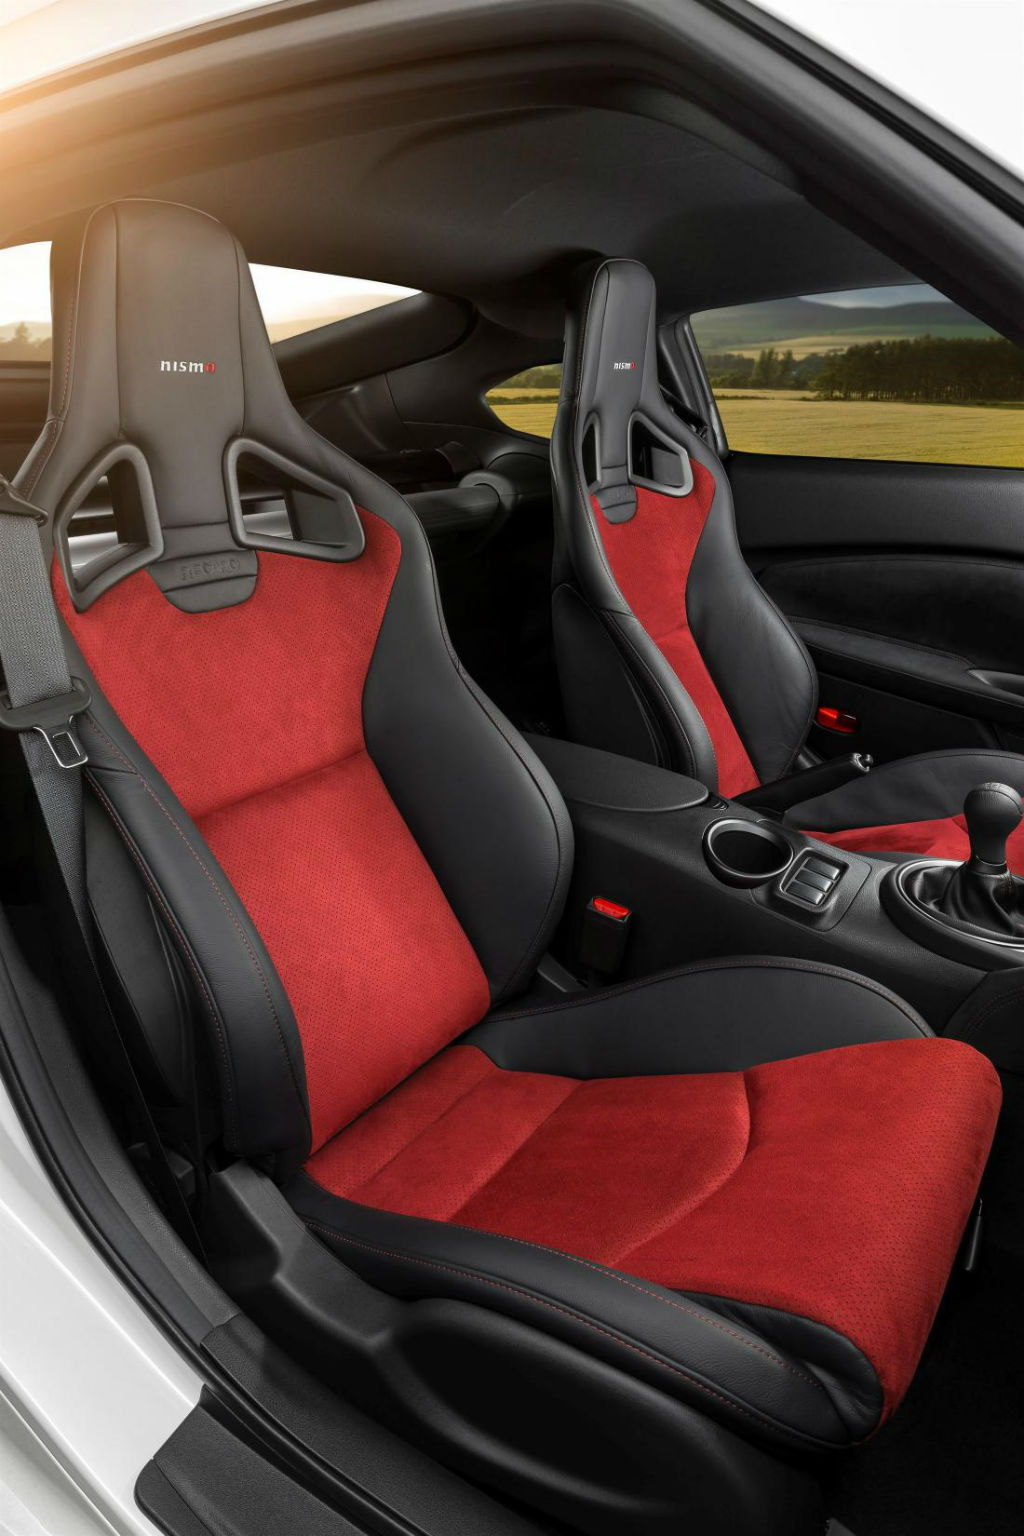 Nissan 370z Nismo Interior Seats, seats, and more...